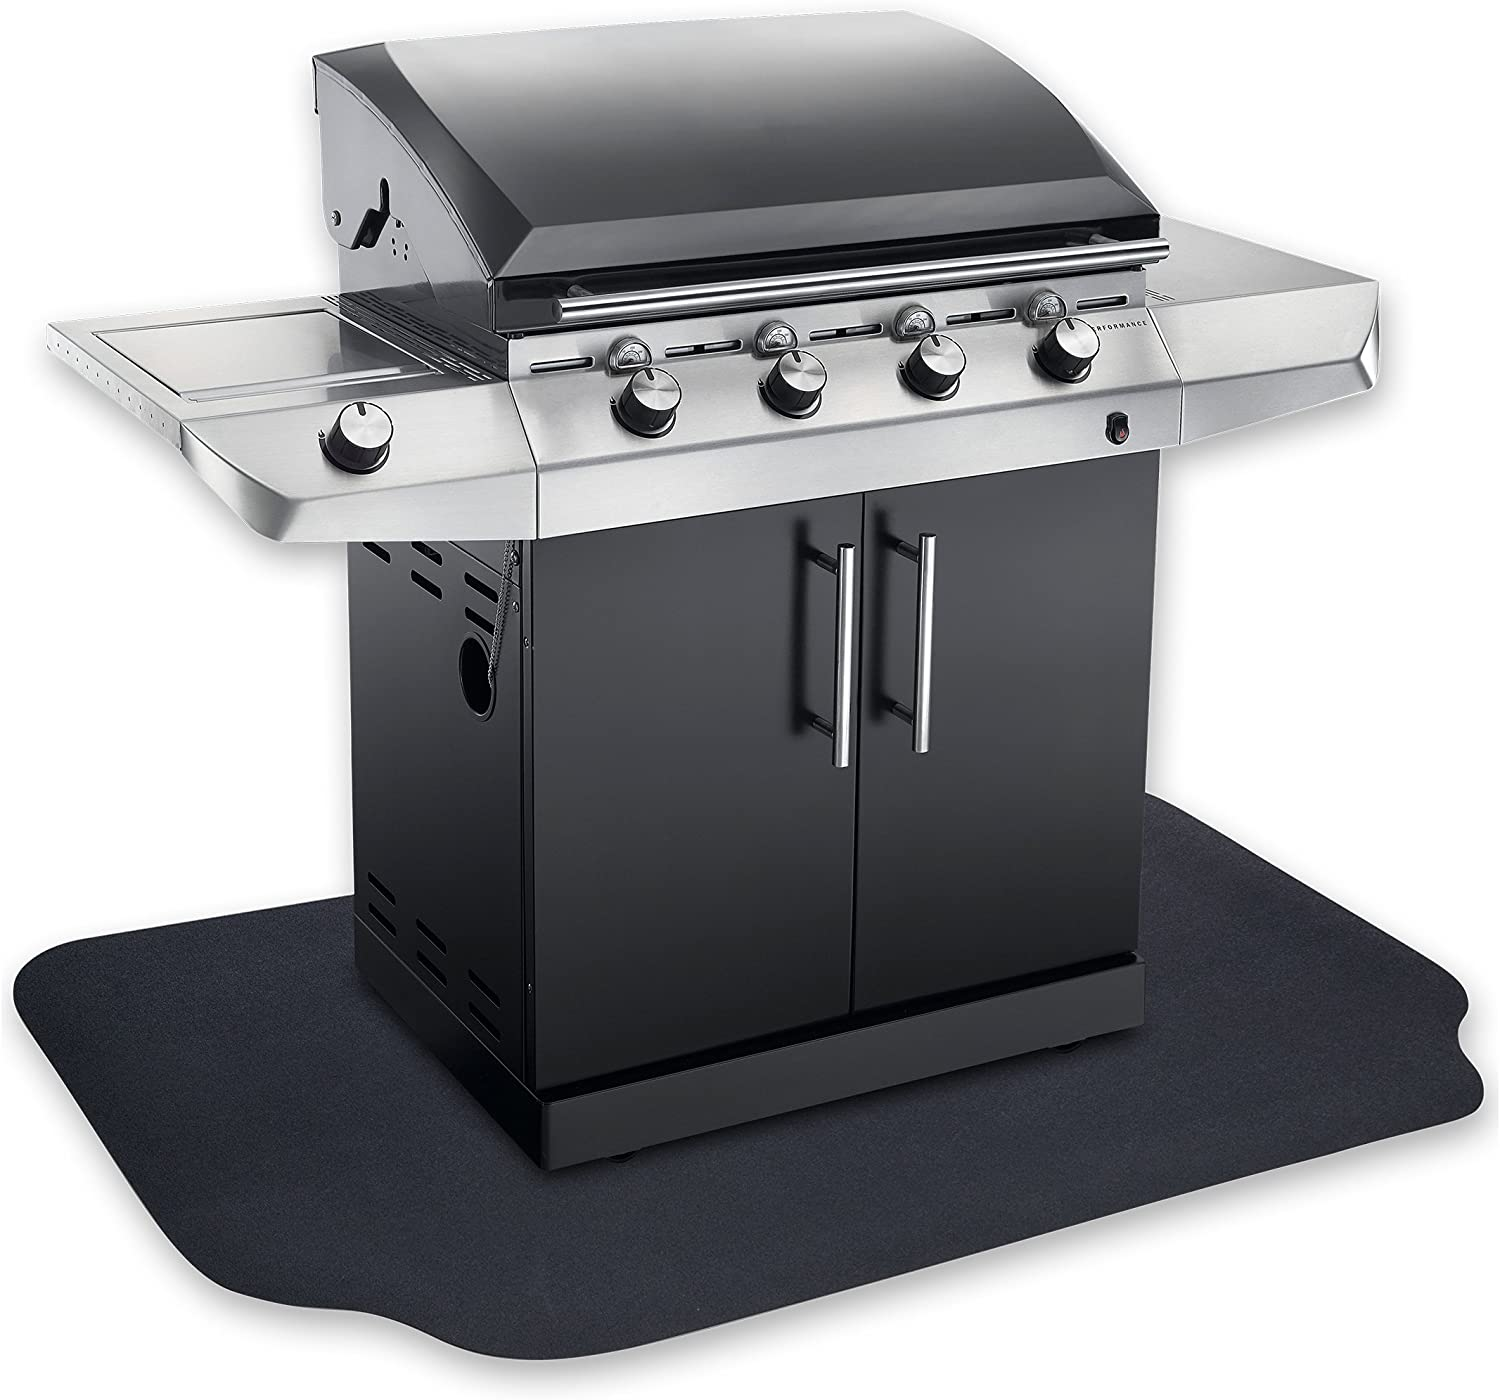 GRILLTEX Under the Grill Protective Deck and Patio Mat, 39 x 72 inches : Patio, Lawn & Garden